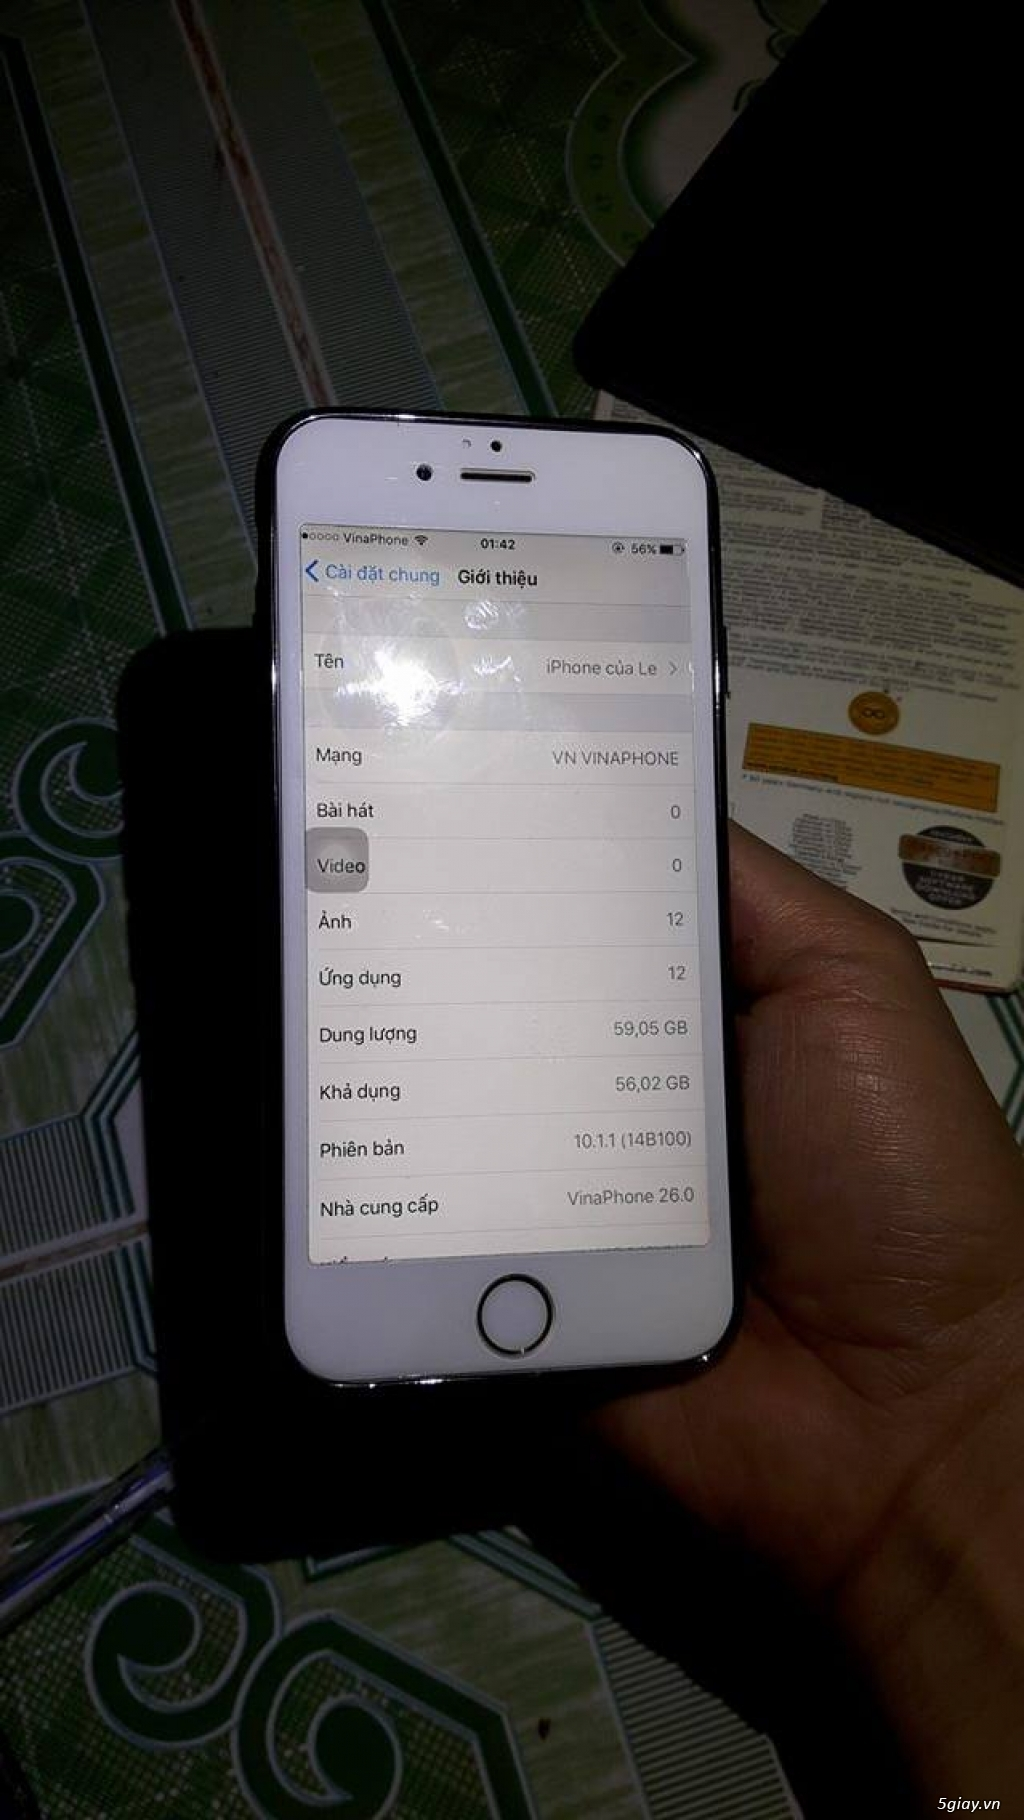 iphone 6 gold 64gb fpt còn bh 2-2017 - 1